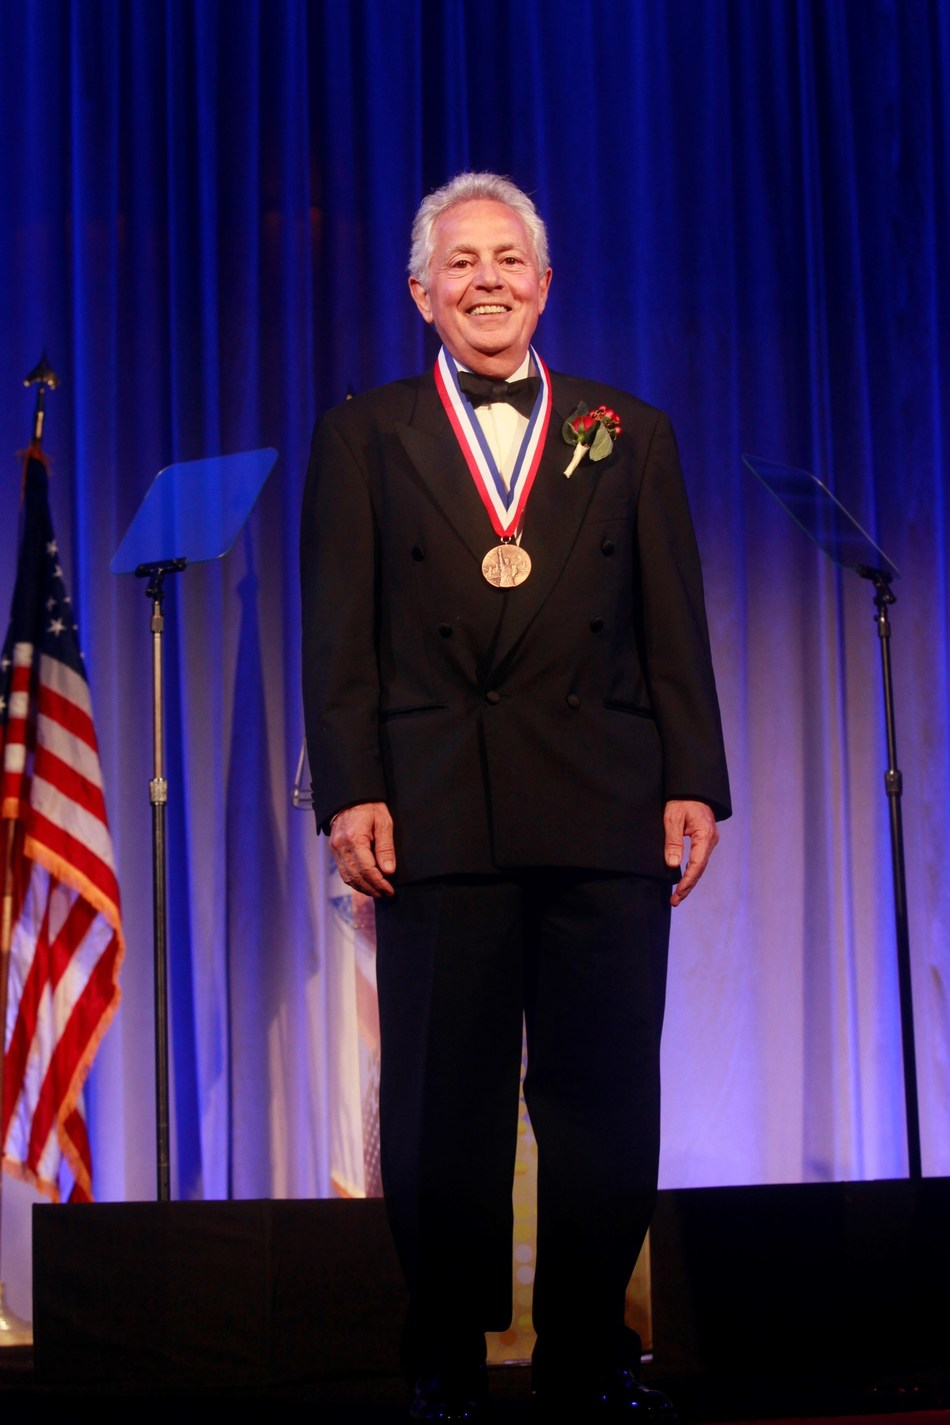 Albert Salama, Founder and CEO of Sabert Corporation, receives 2018 Ellis Island Medal of Honor.